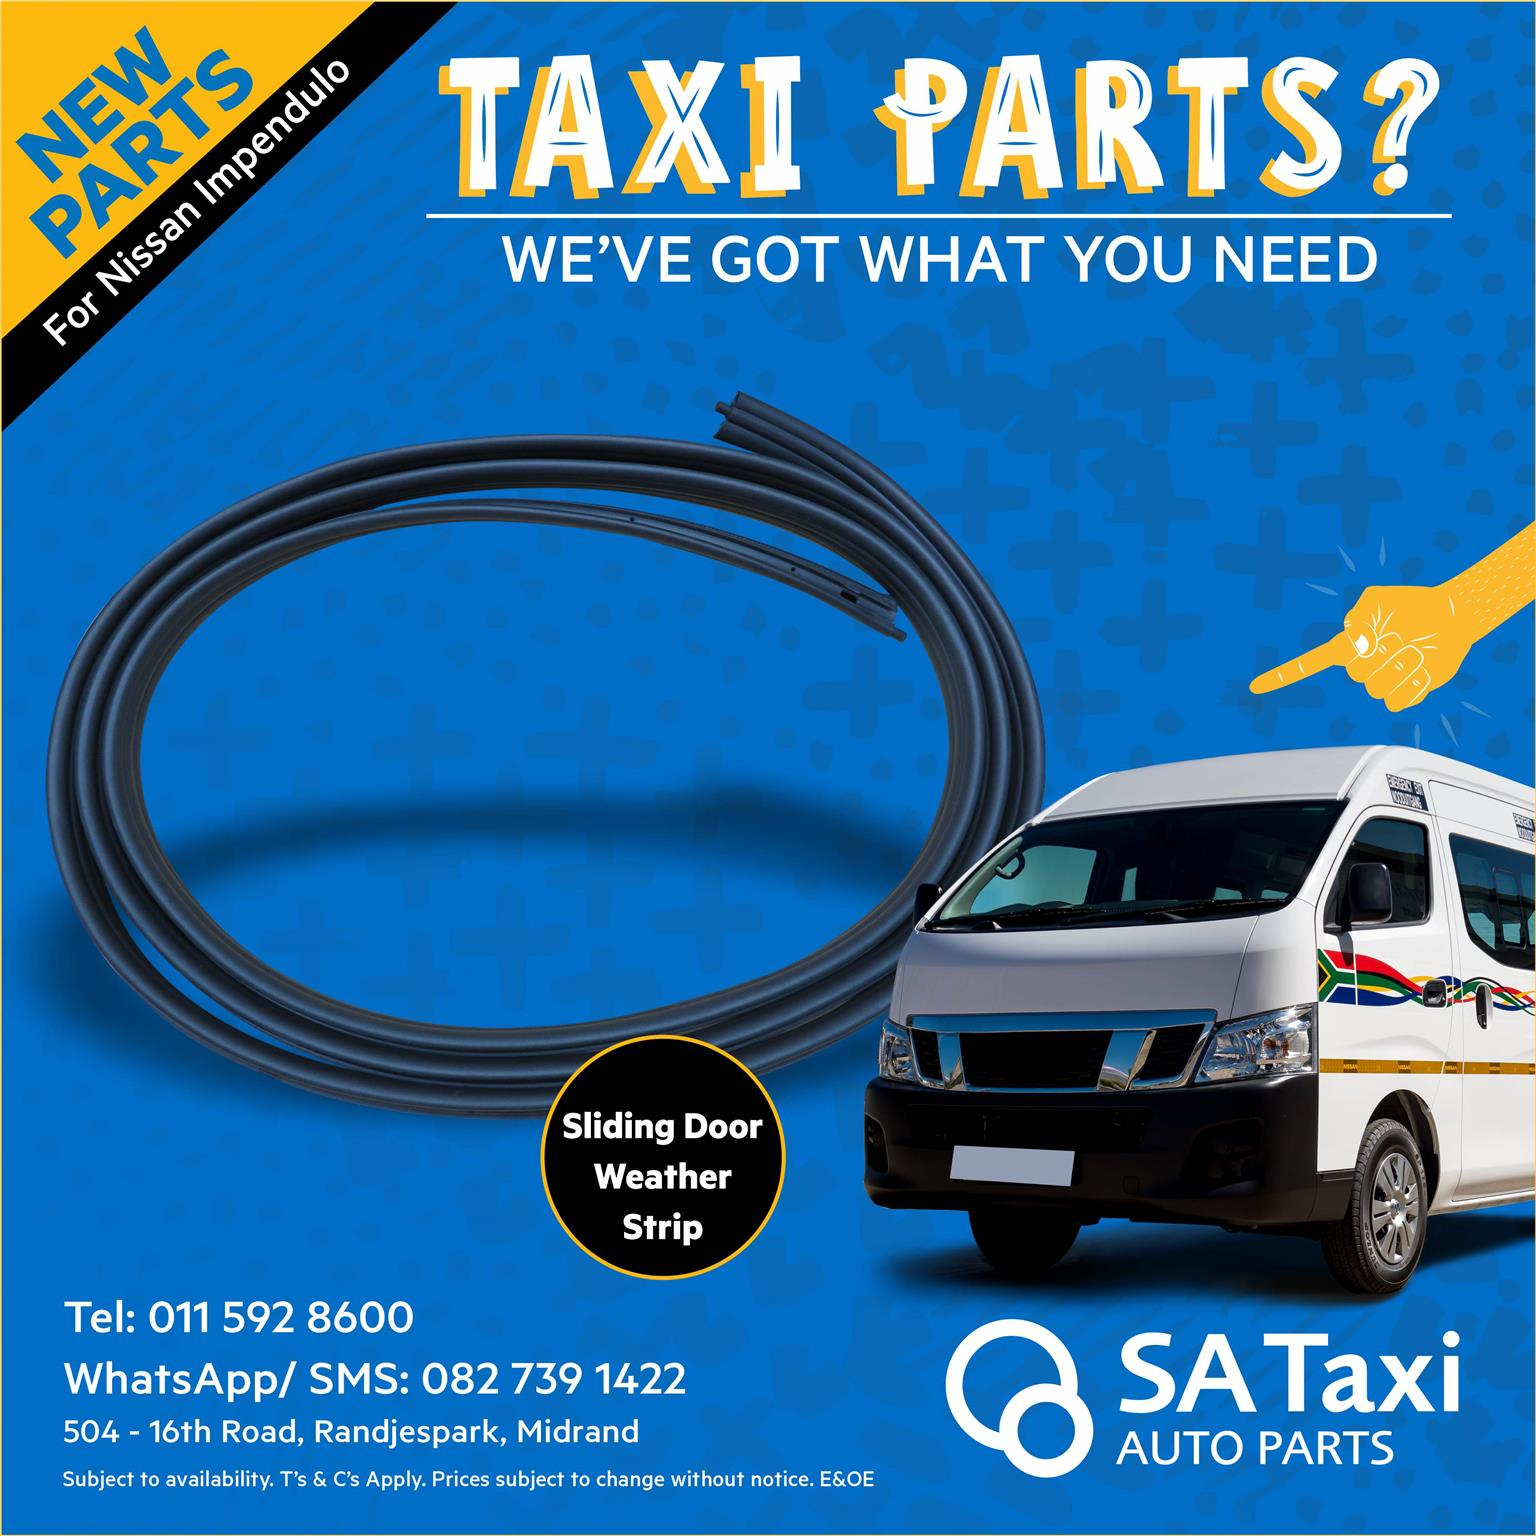 NEW Sliding Door Weather Strip suitable for Nissan Impendulo - SA Taxi Auto Parts quality new spares